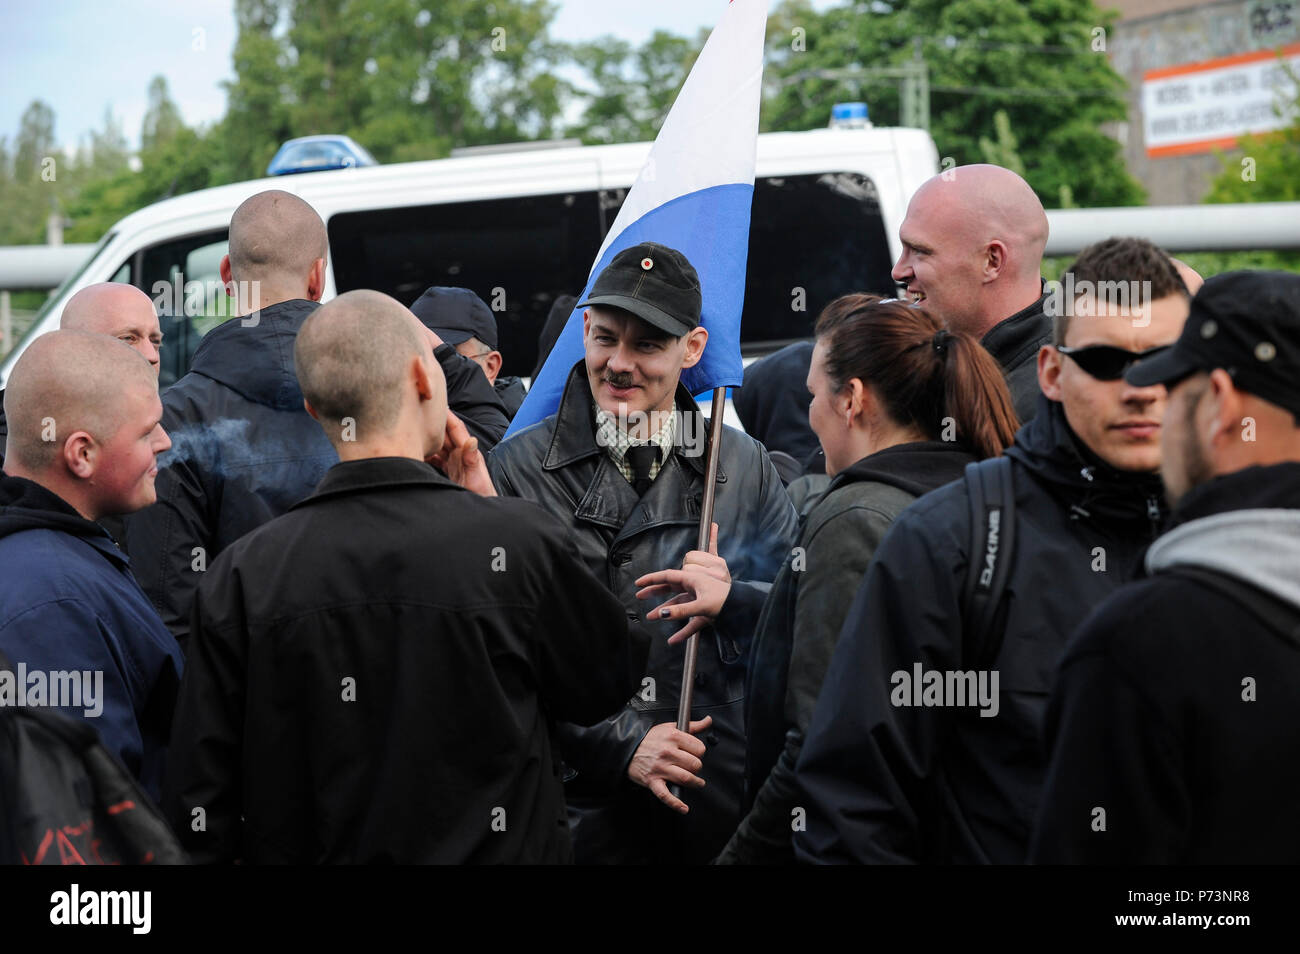 Germany, rally of Nazi and right extremists groups in hamburg, Neo Nazi activist with Adolf Hitler moustache Stock Photo